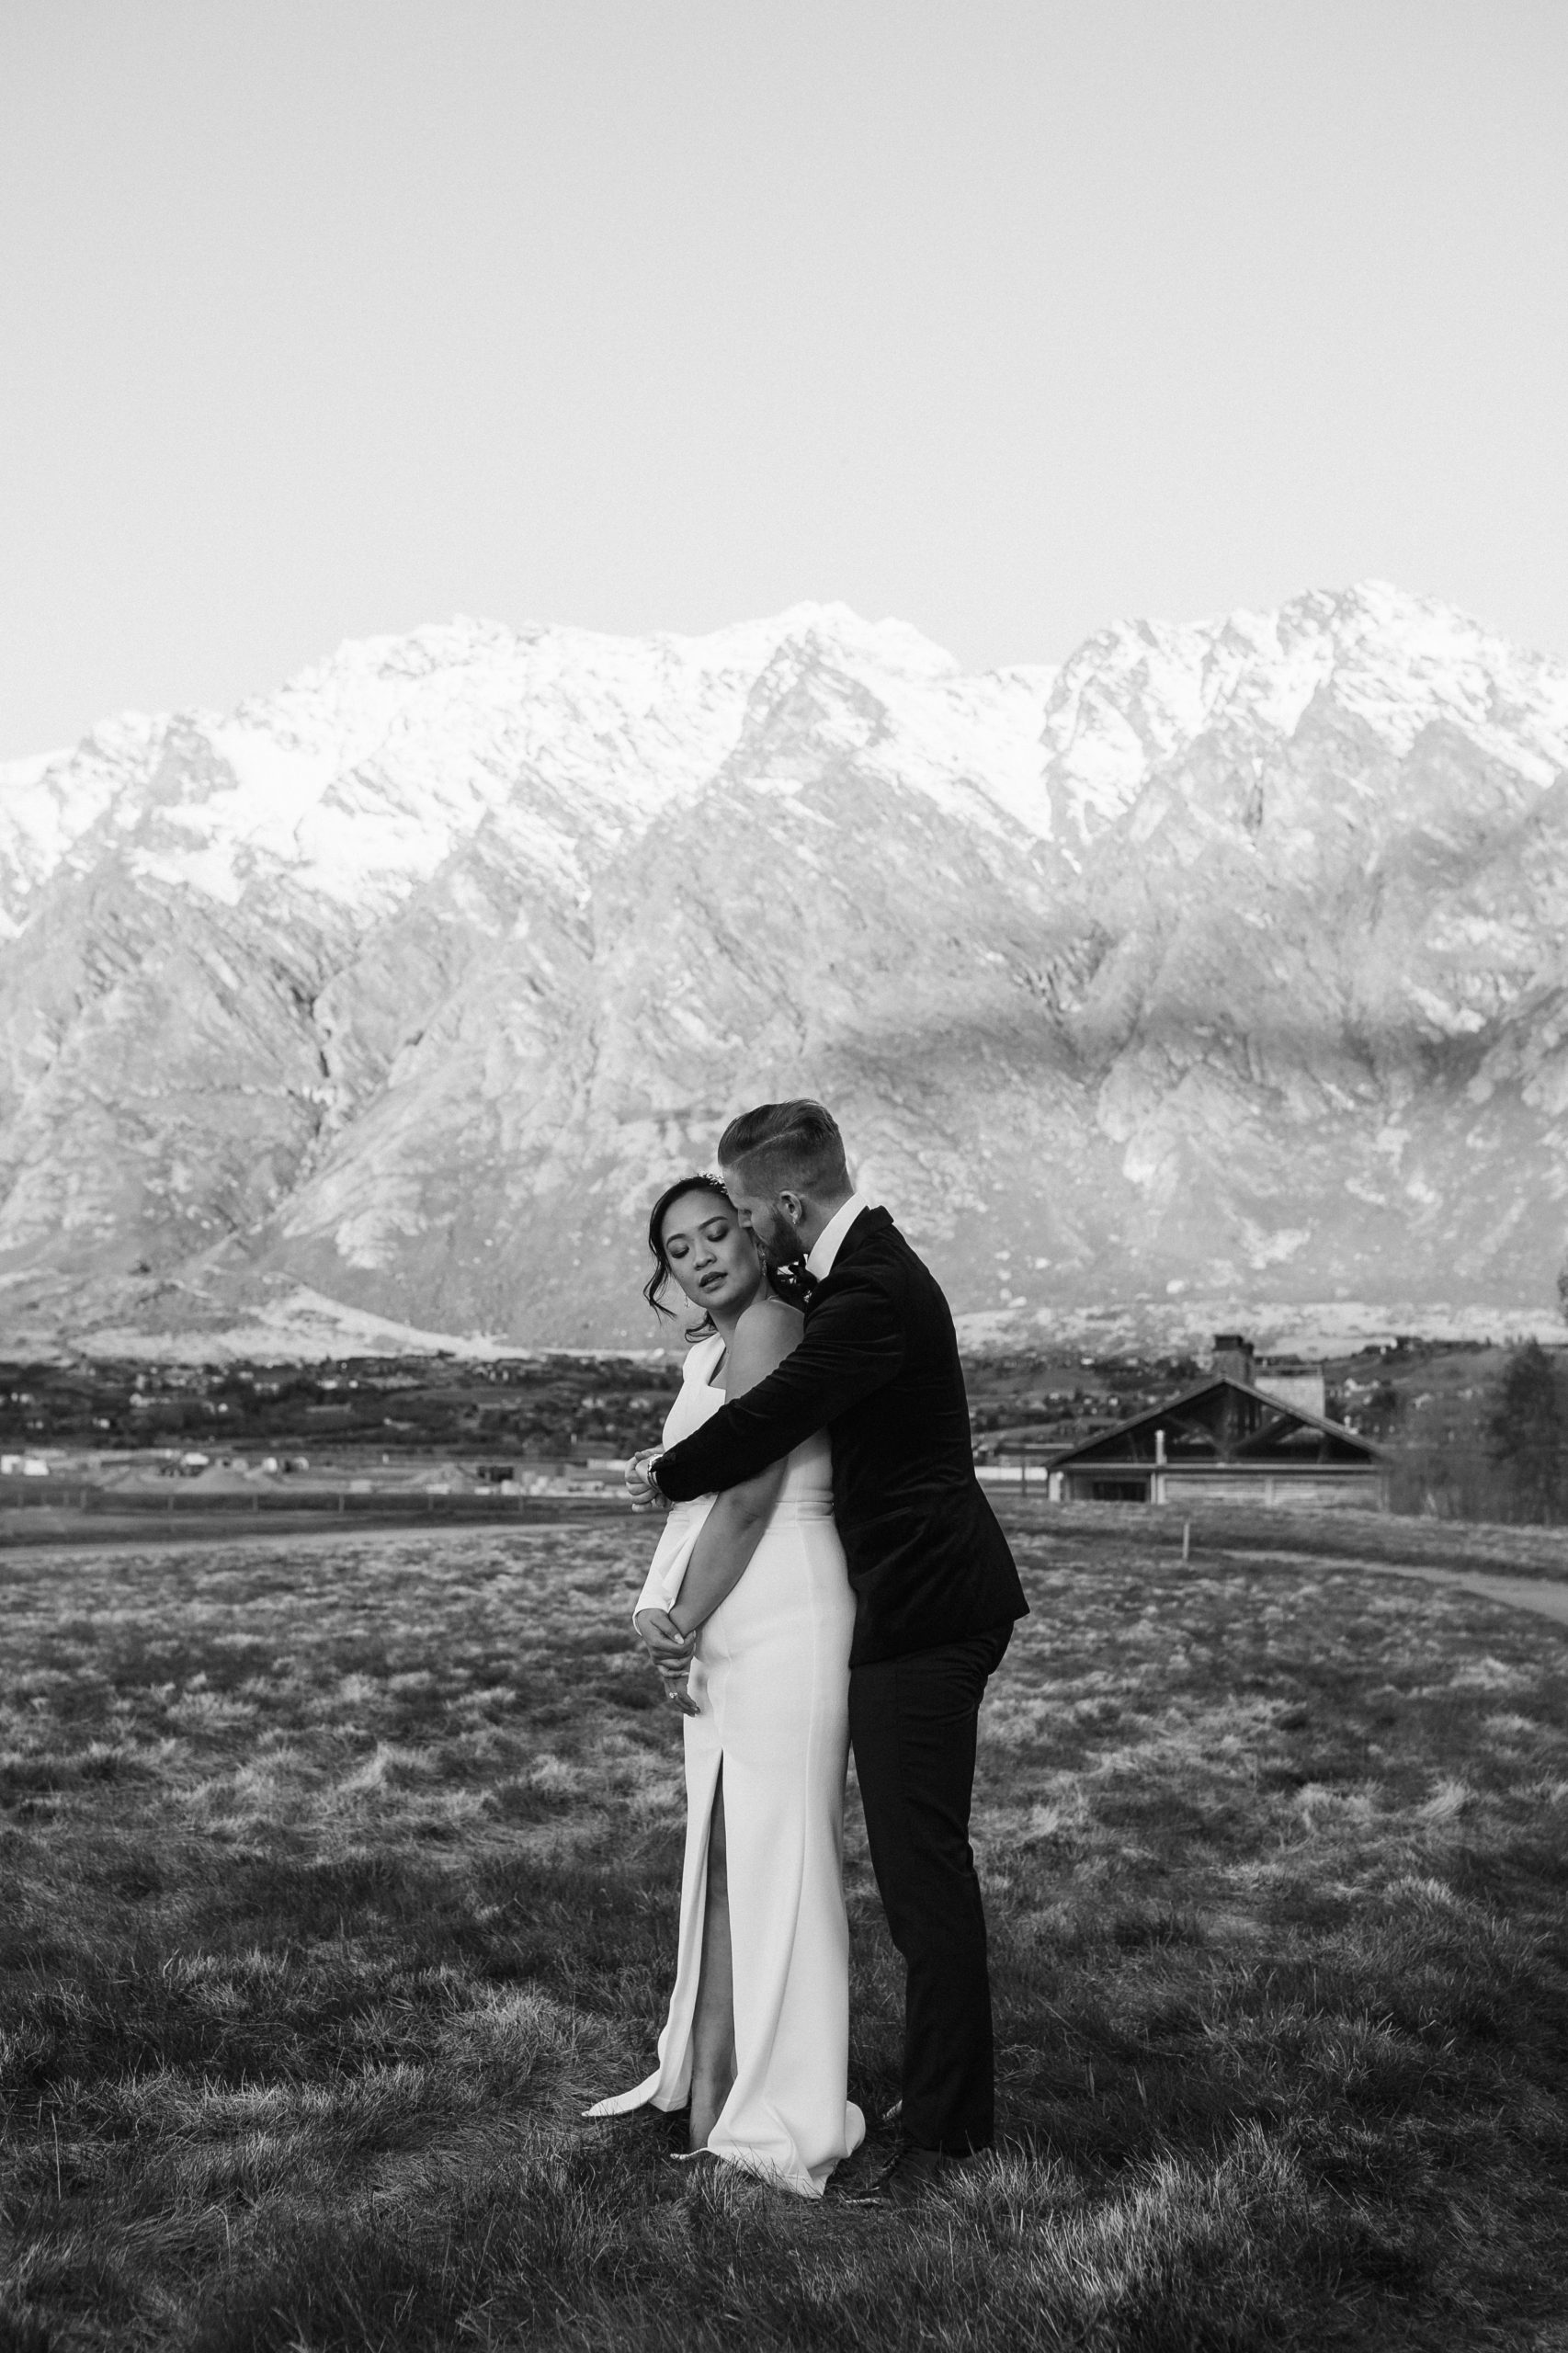 Bride and groom embracing Modern Classic winter wedding at Jack Point in Queenstown